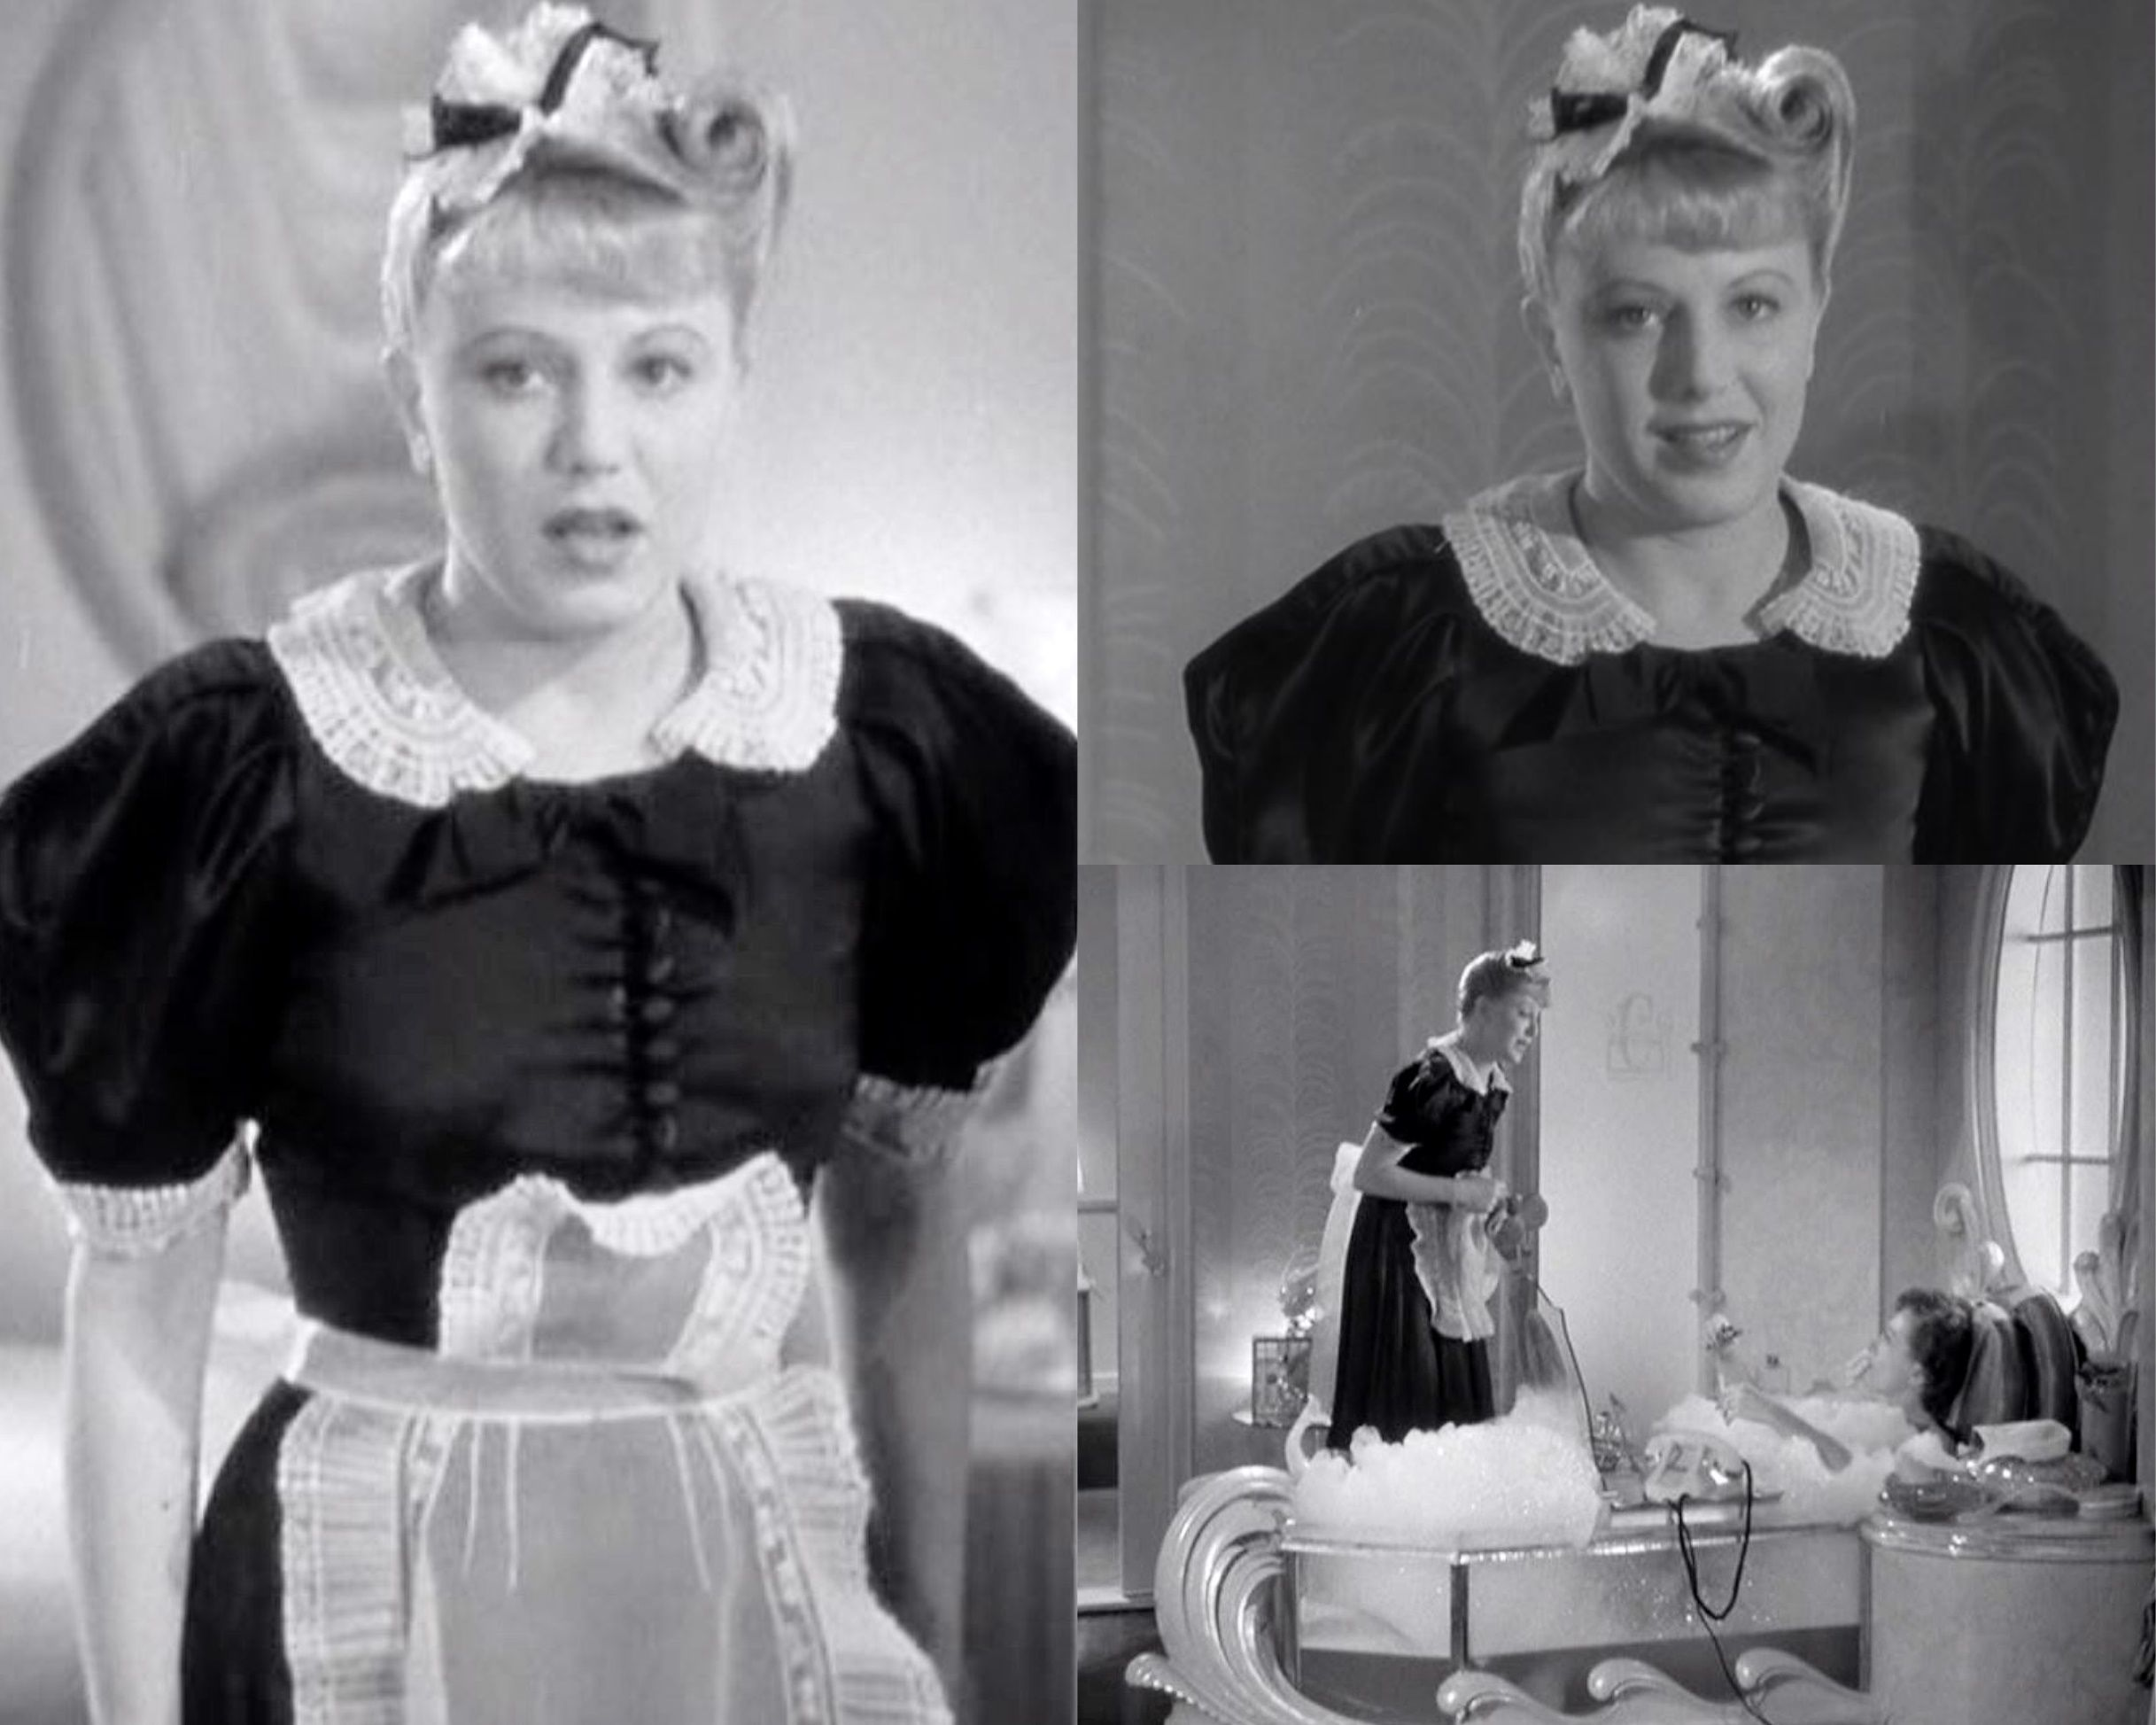 the woman 1939 (early 40s fashions) french maid - love her